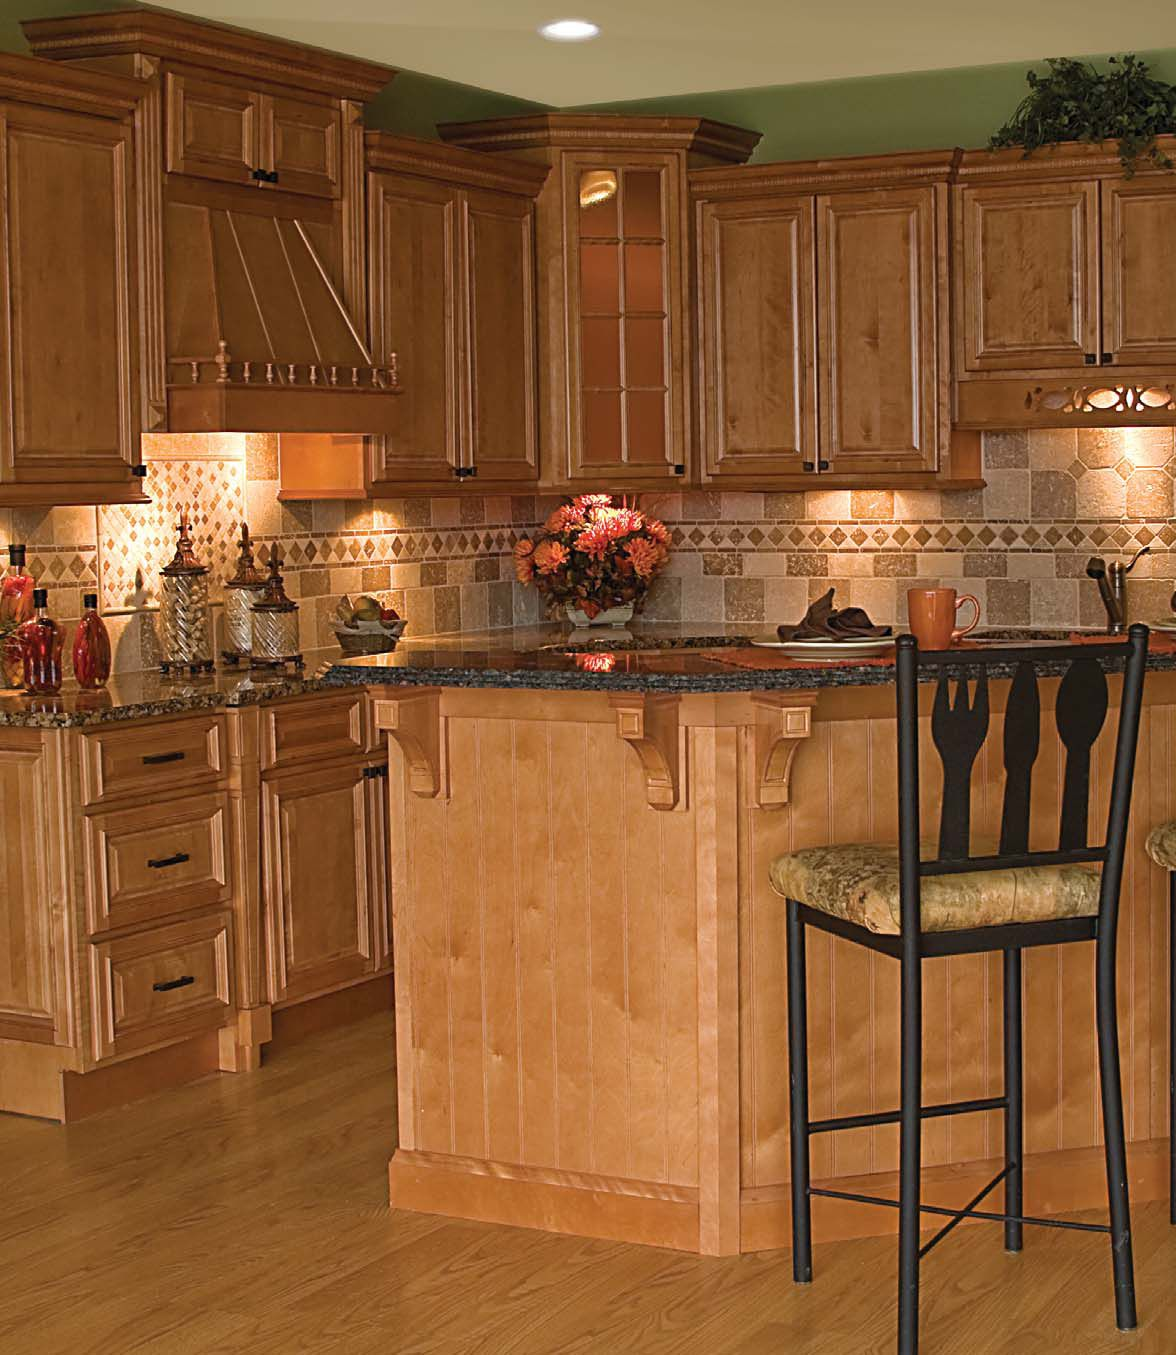 Pictures Of Oak Kitchen Cabinets: Ready To Assemble Kitchen Cabinets